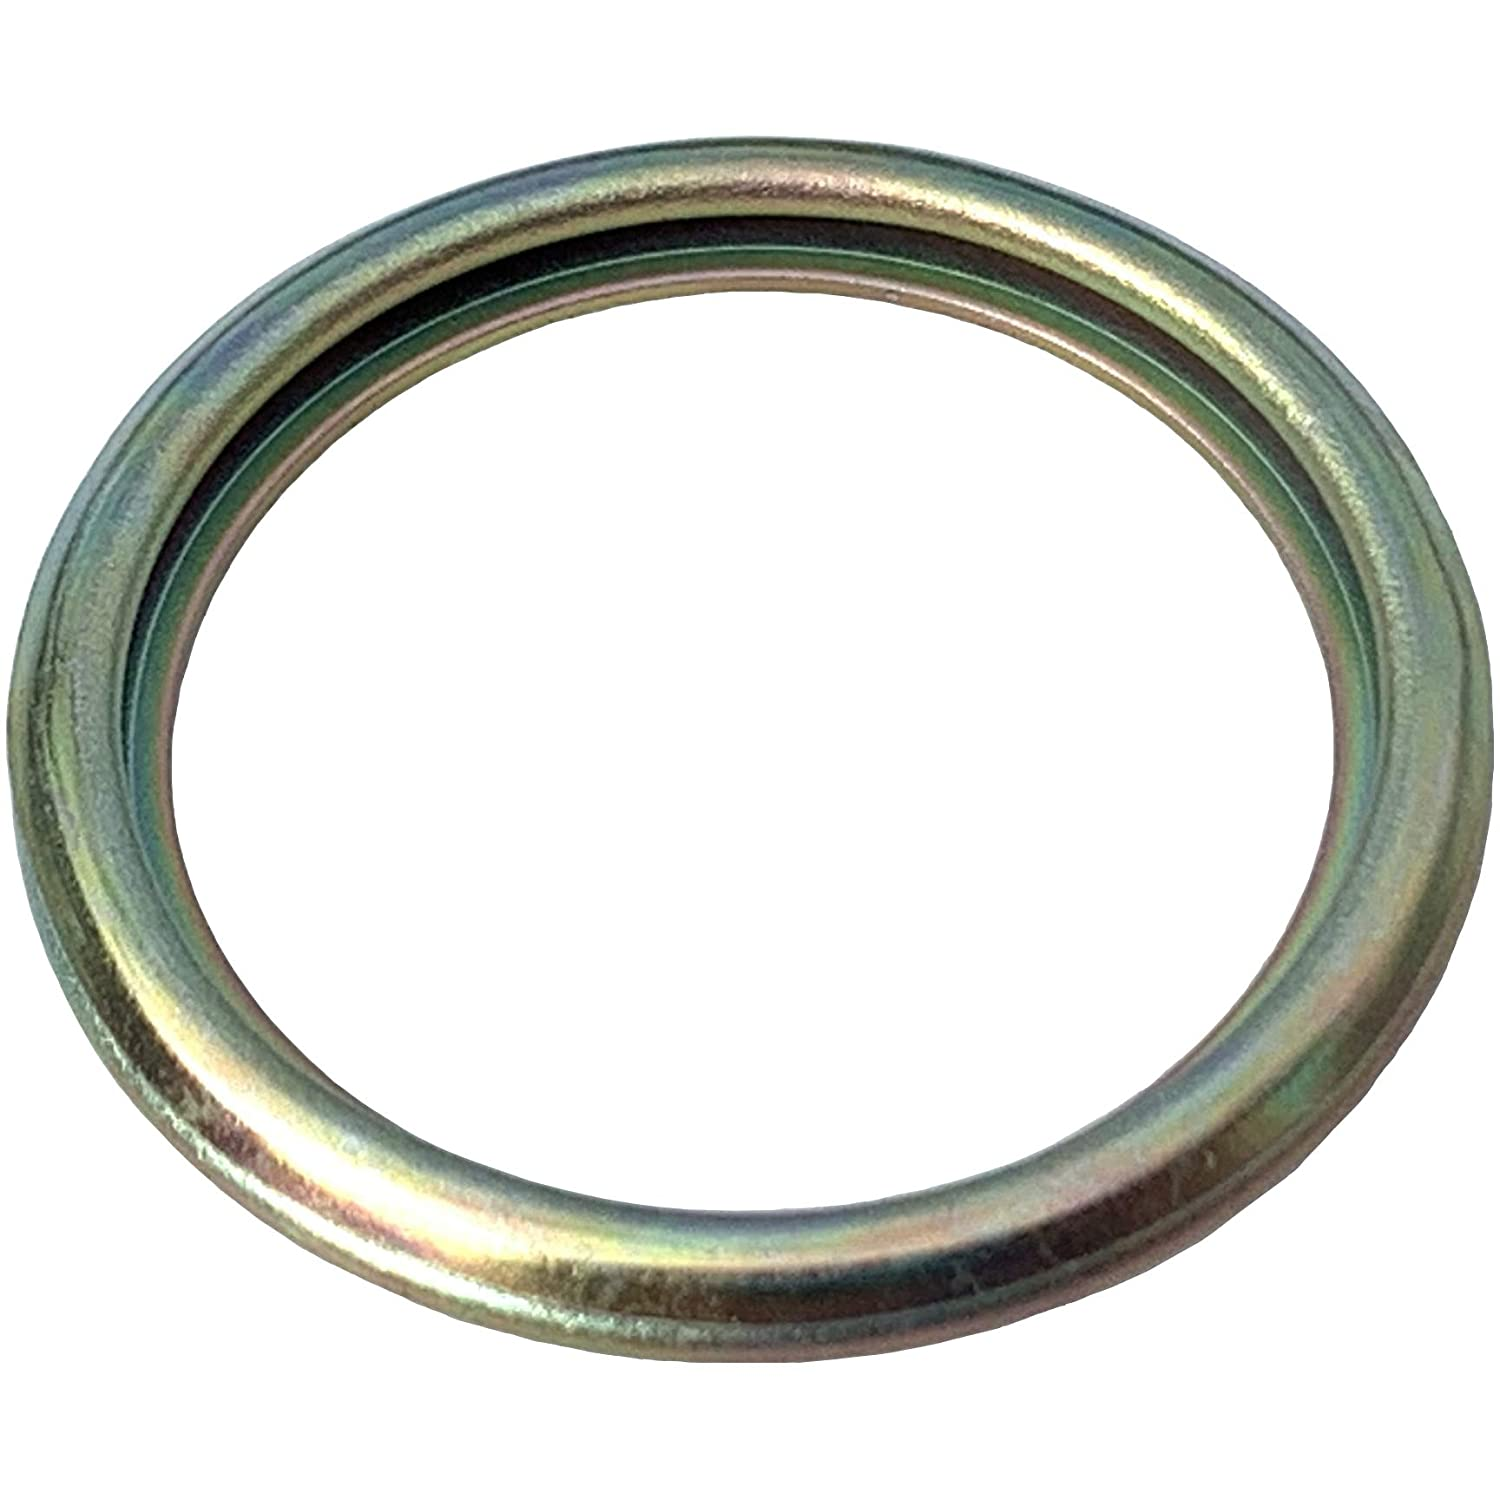 Prime Ave OEM Engine Oil Drain Plug Washer Gaskets For Subaru Part# 11126AA000 Pack of 15